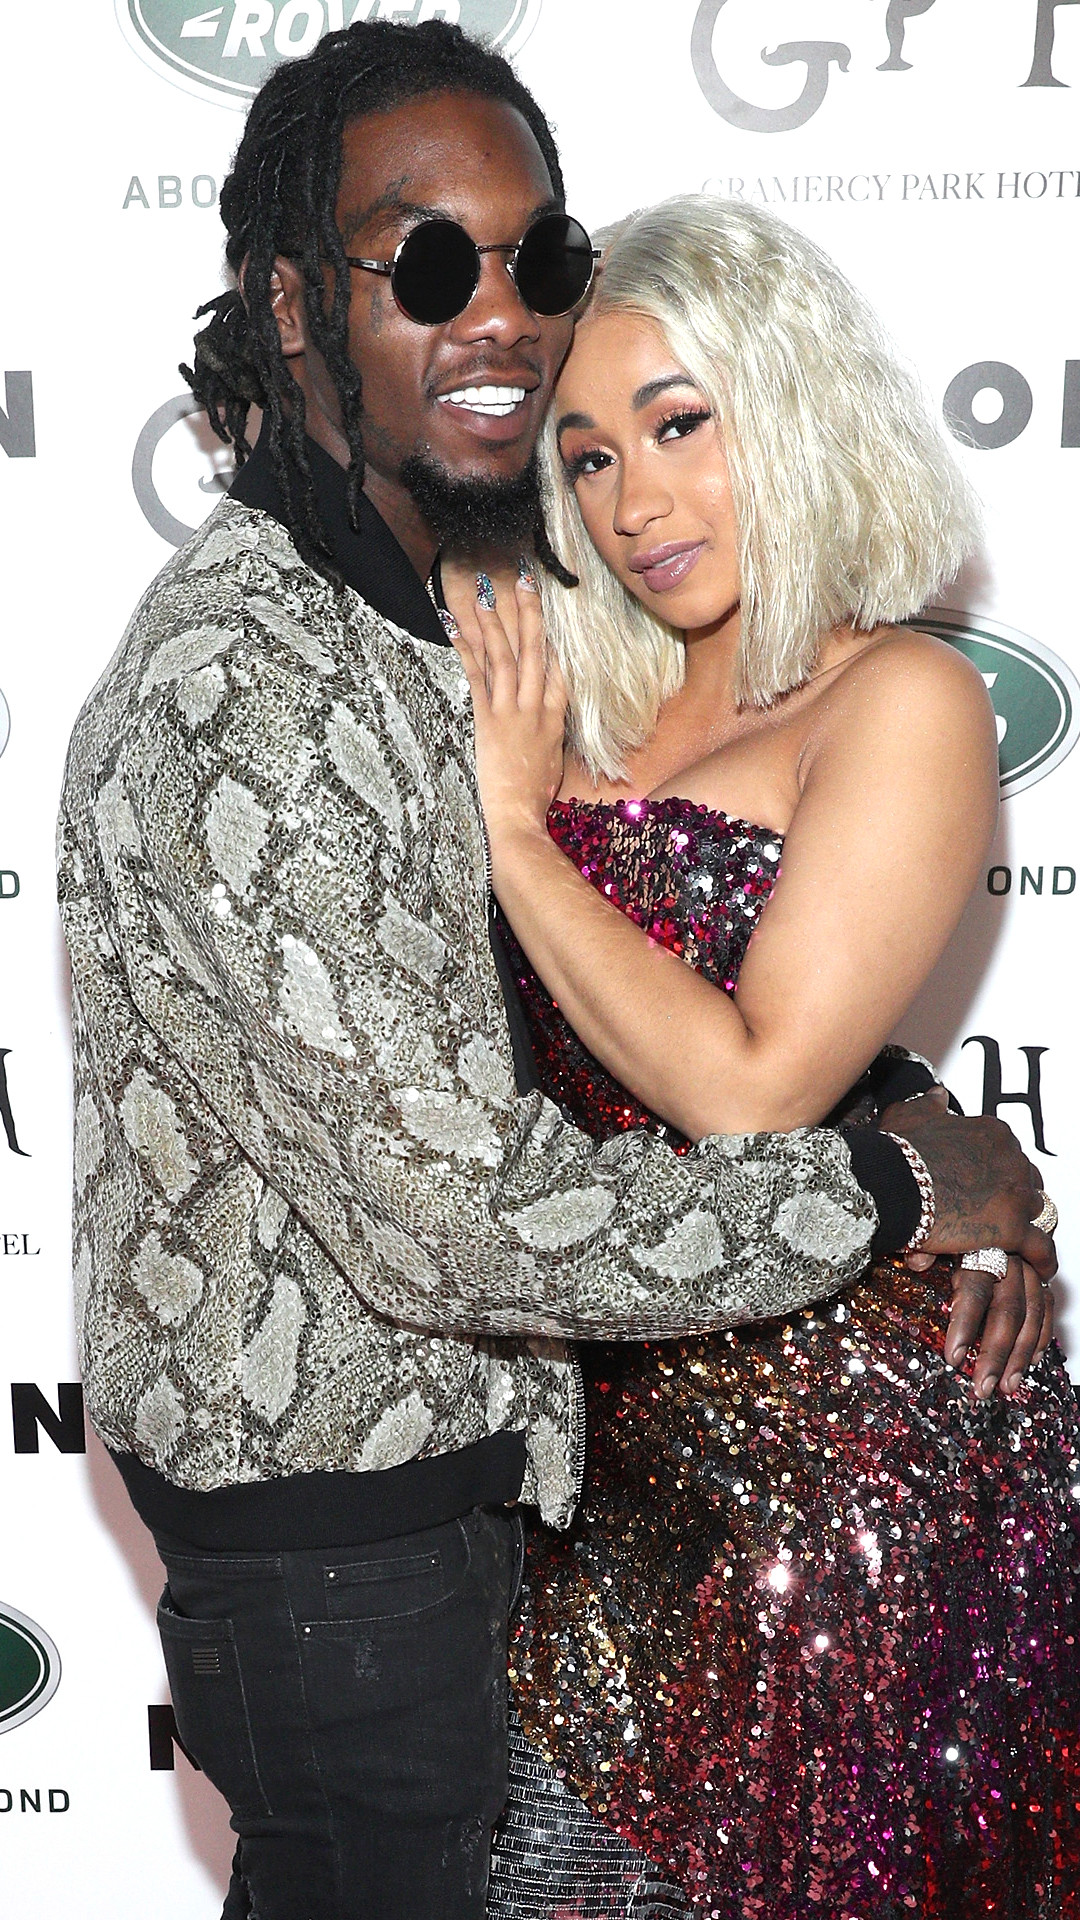 Cardi B S Fiancé Offset Loses 150k Chain After The Met Gala: Cardi B Is Pregnant, Expecting First Child With Fiancé